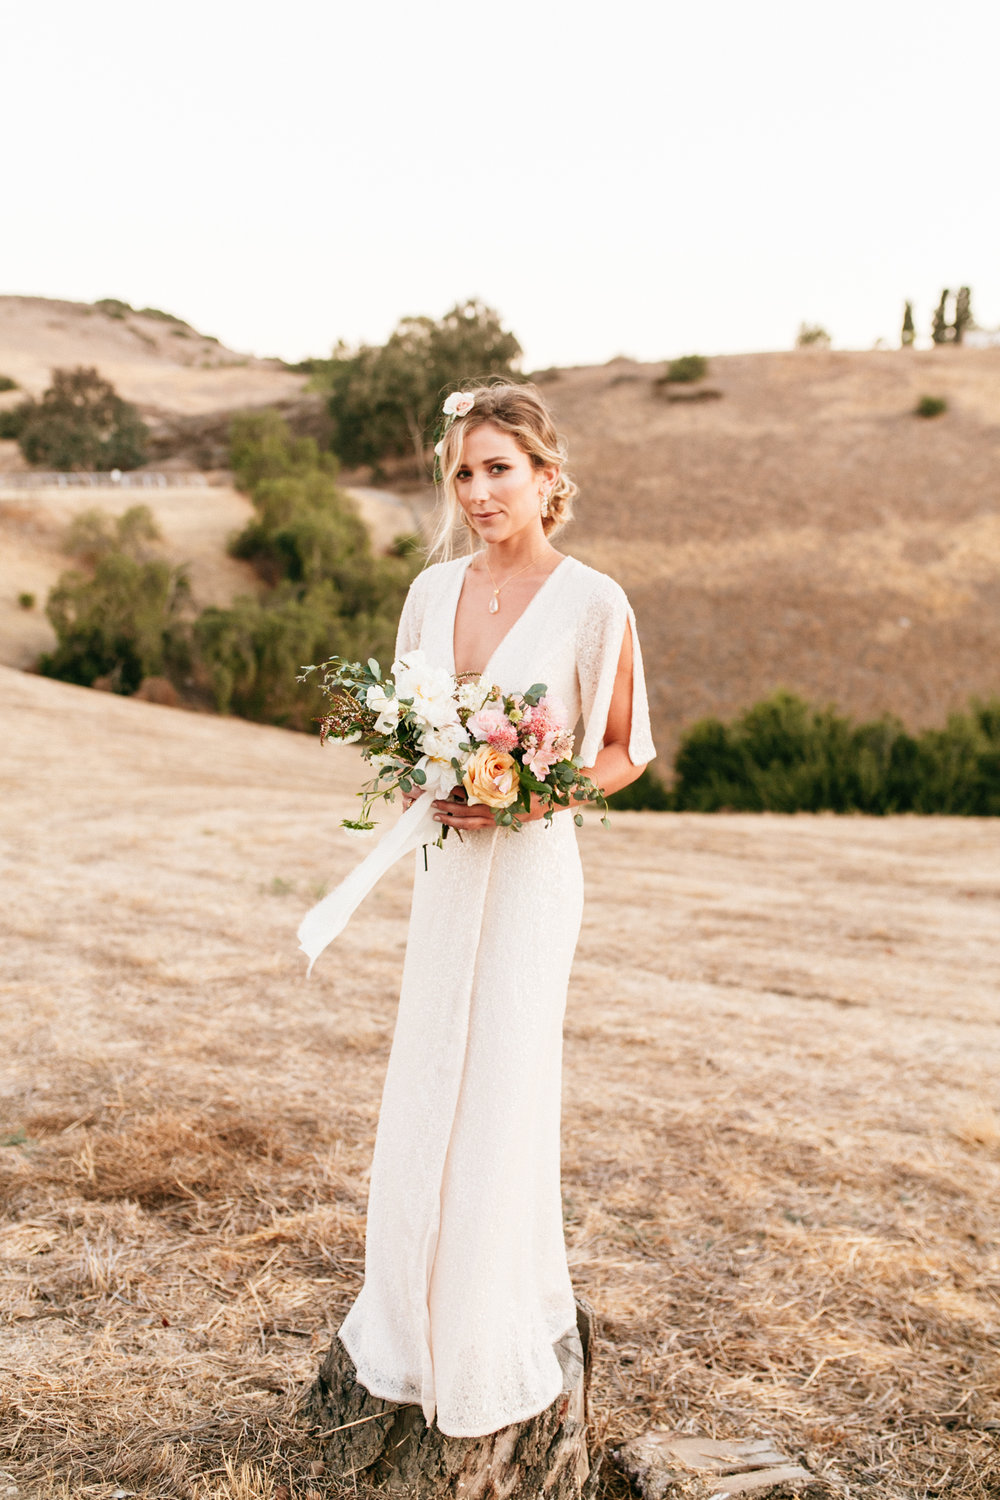 SamErica Studios - modern boho bride portrait - wedding floral crown - san diego wedding photographer